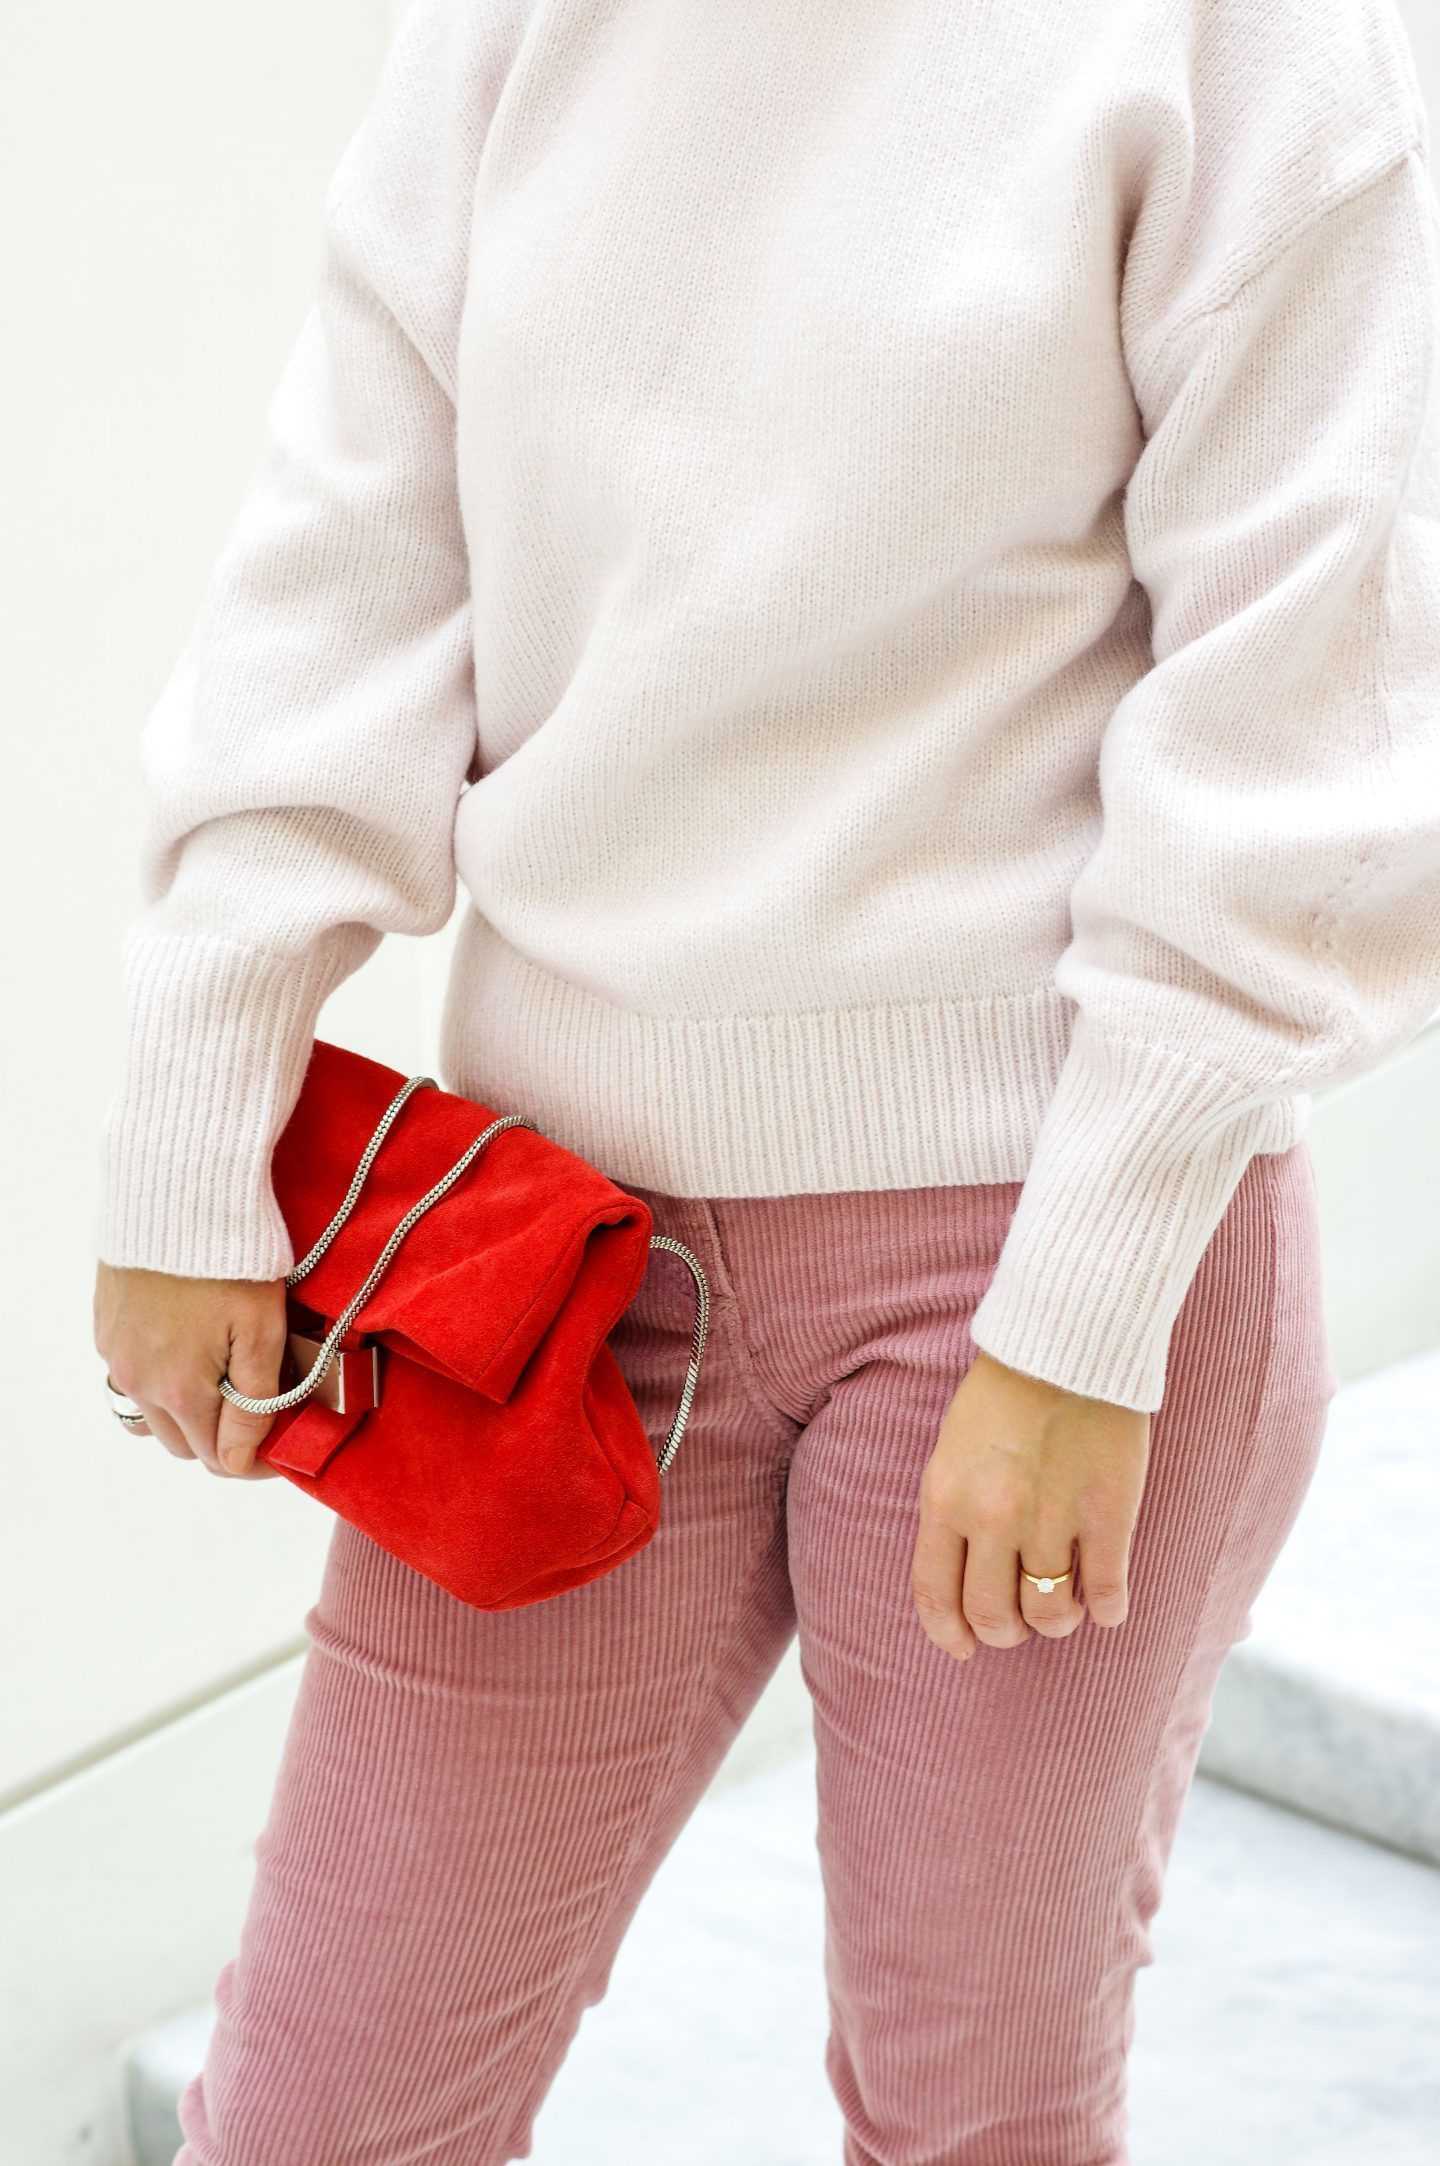 Corduroy trousers pink , sweater and red bag